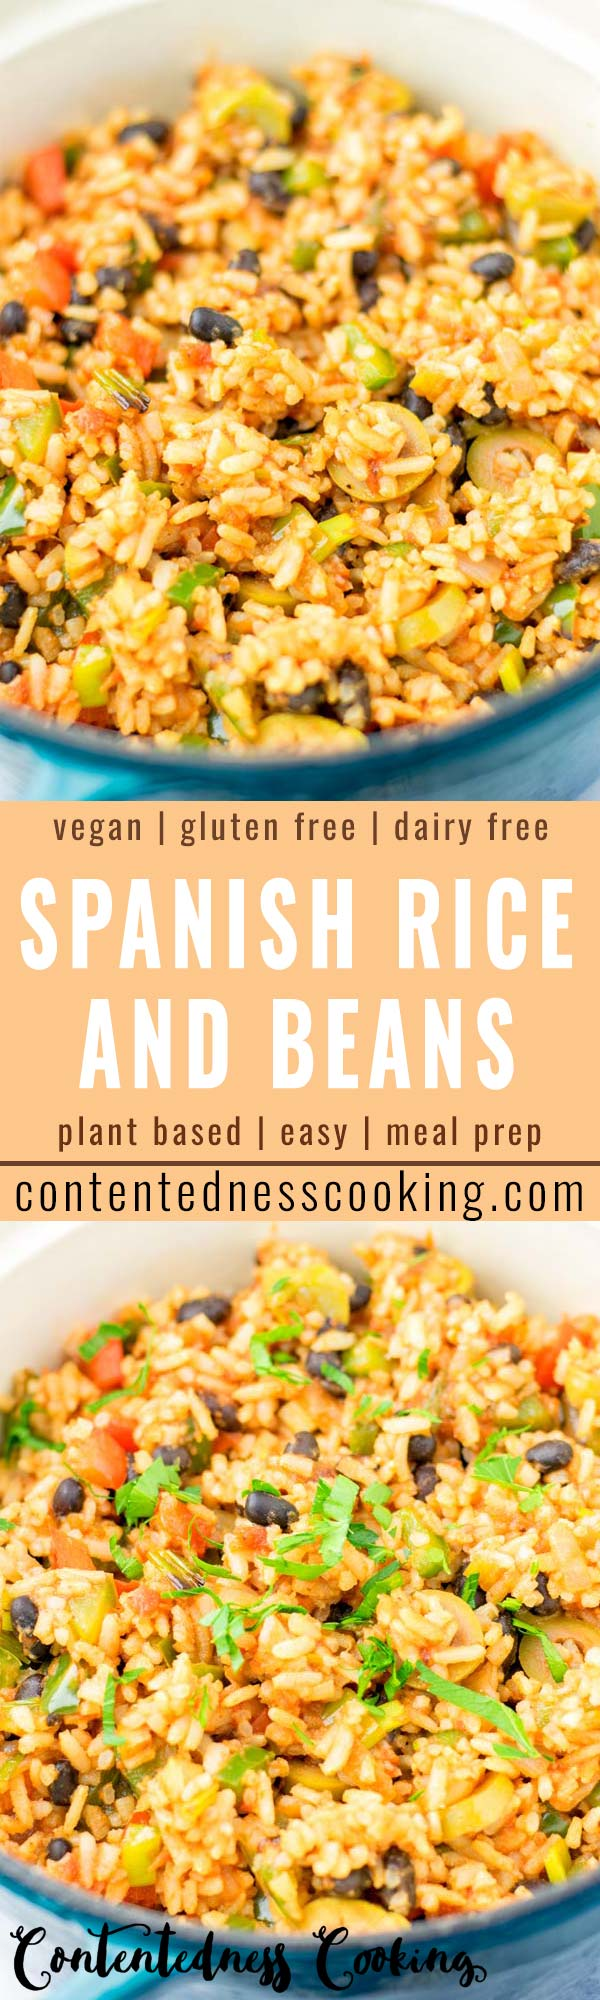 This Spanish Rice and Beans is made with authentic spices and is super easy to make in one pot. Ready in under 25 minutes and seriously so delicious. Amazing for dinner, lunch, meal prep and more. Also you will find an instant pot version. #vegan #dairyfree #glutenfree #vegetarian #onepotmeal #spanishriceinstantpot #dinner #lunch #mealprep #budgetmeals #contentednesscooking #comfortfood #familymeals #spanishriceandbeans